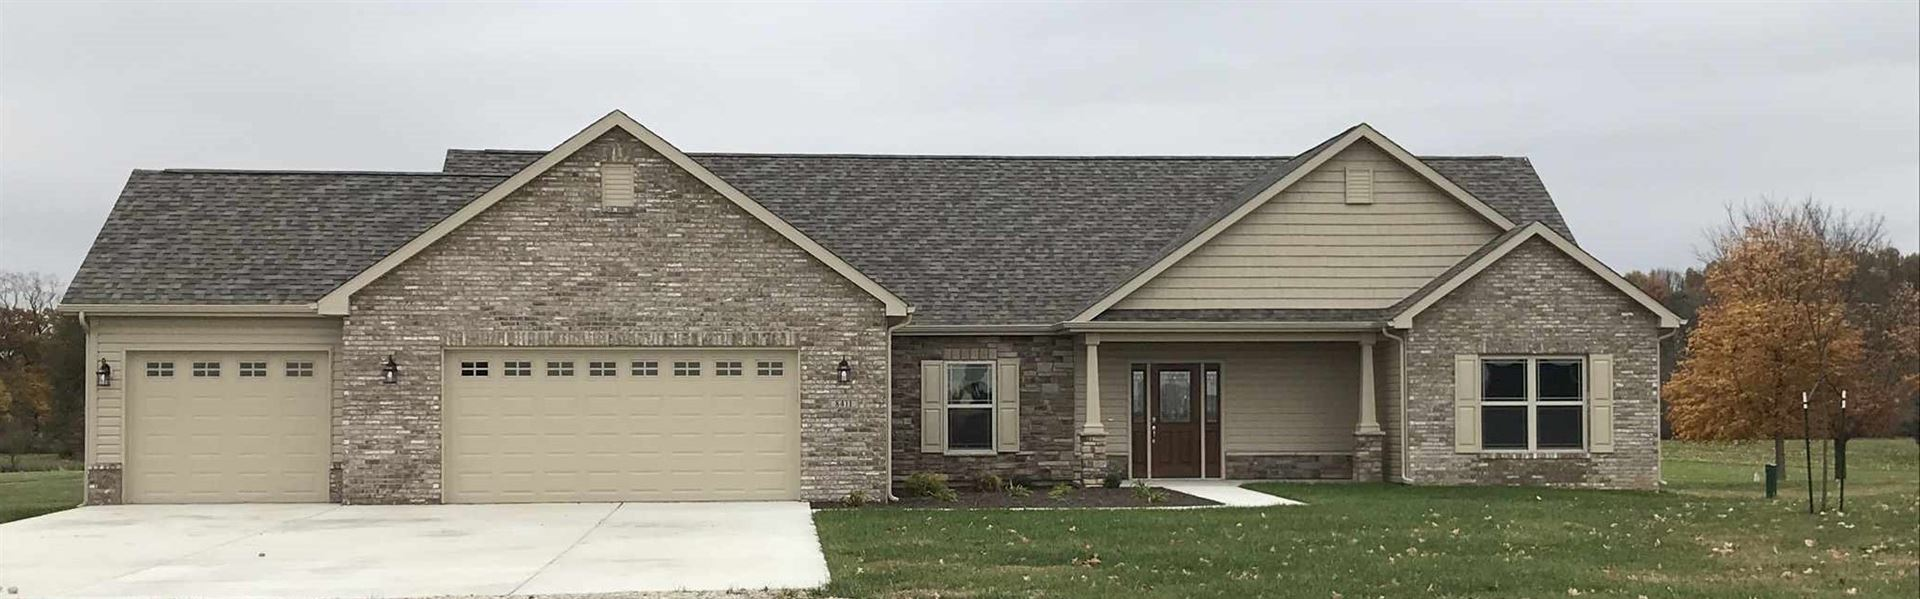 8411 Division Road, West Lafayette, IN 47906 - #: 201931404